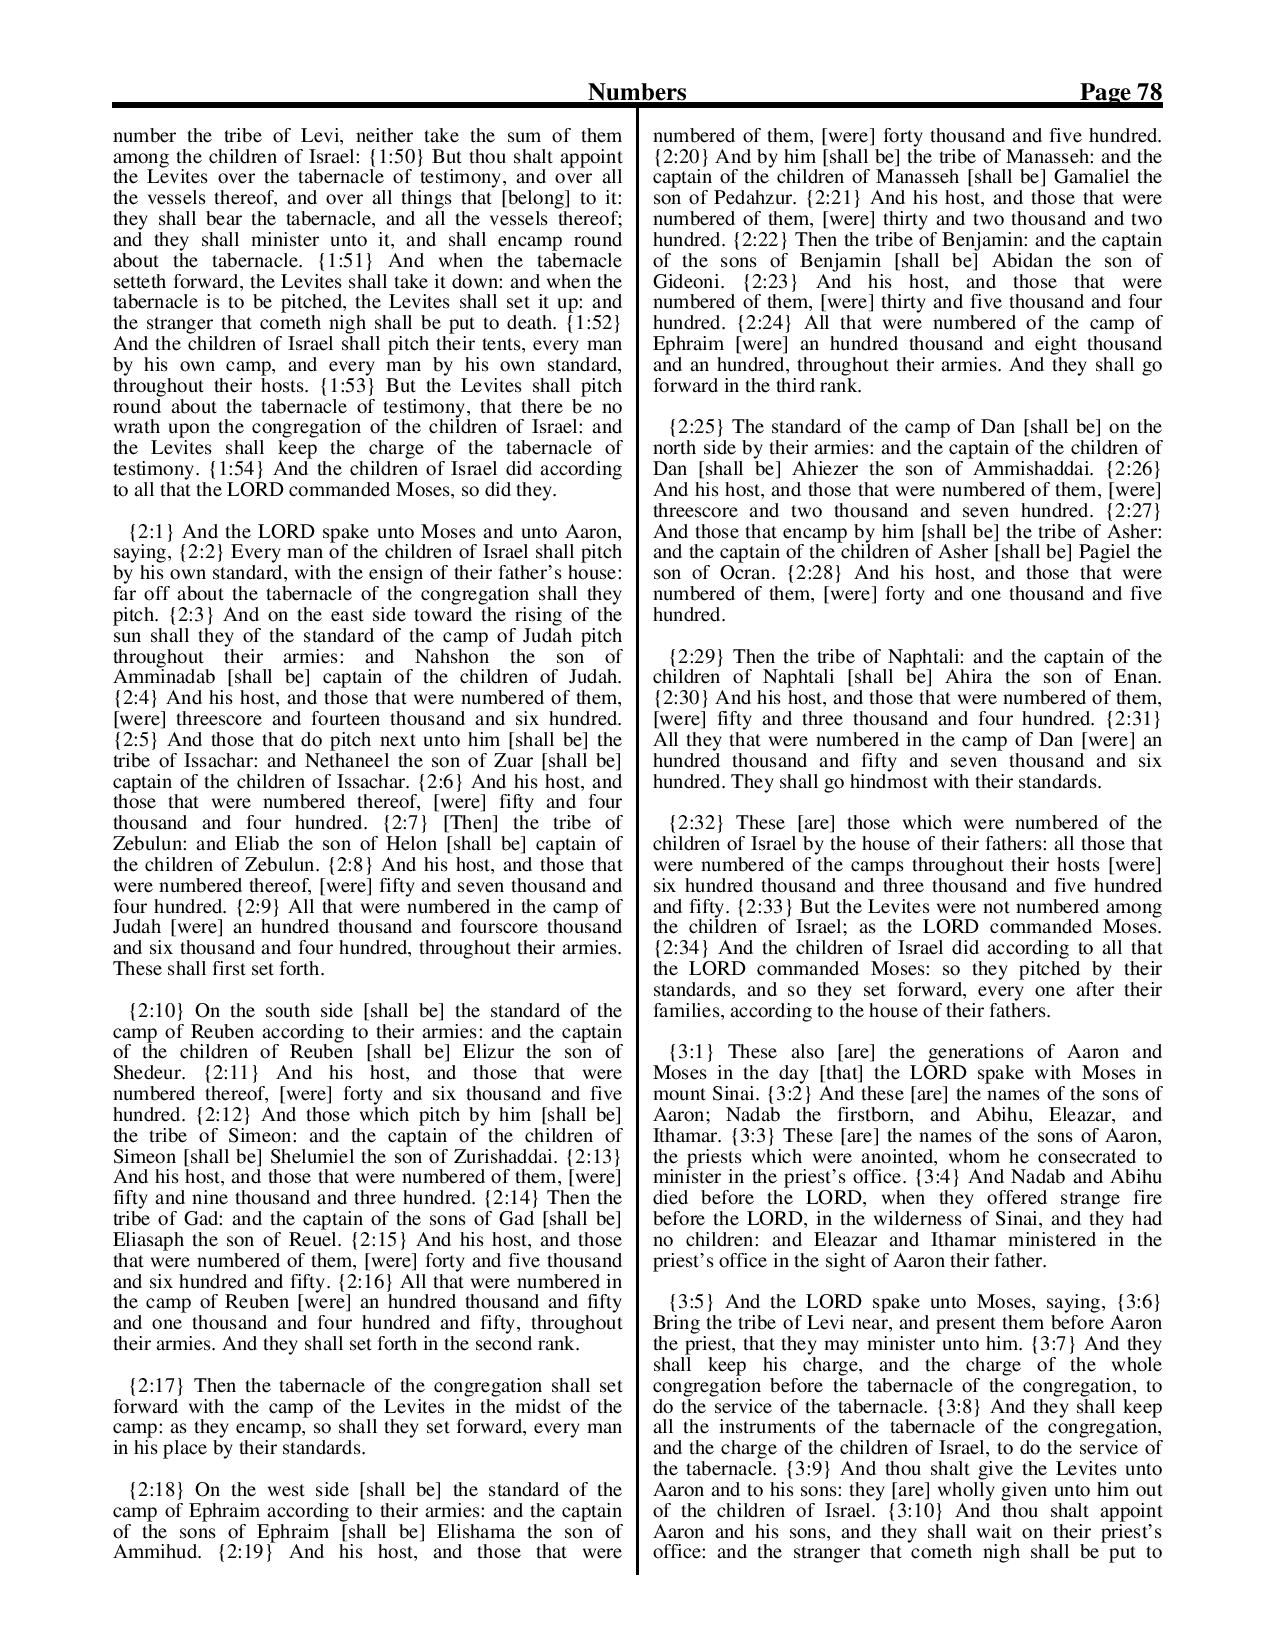 King-James-Bible-KJV-Bible-PDF-page-099